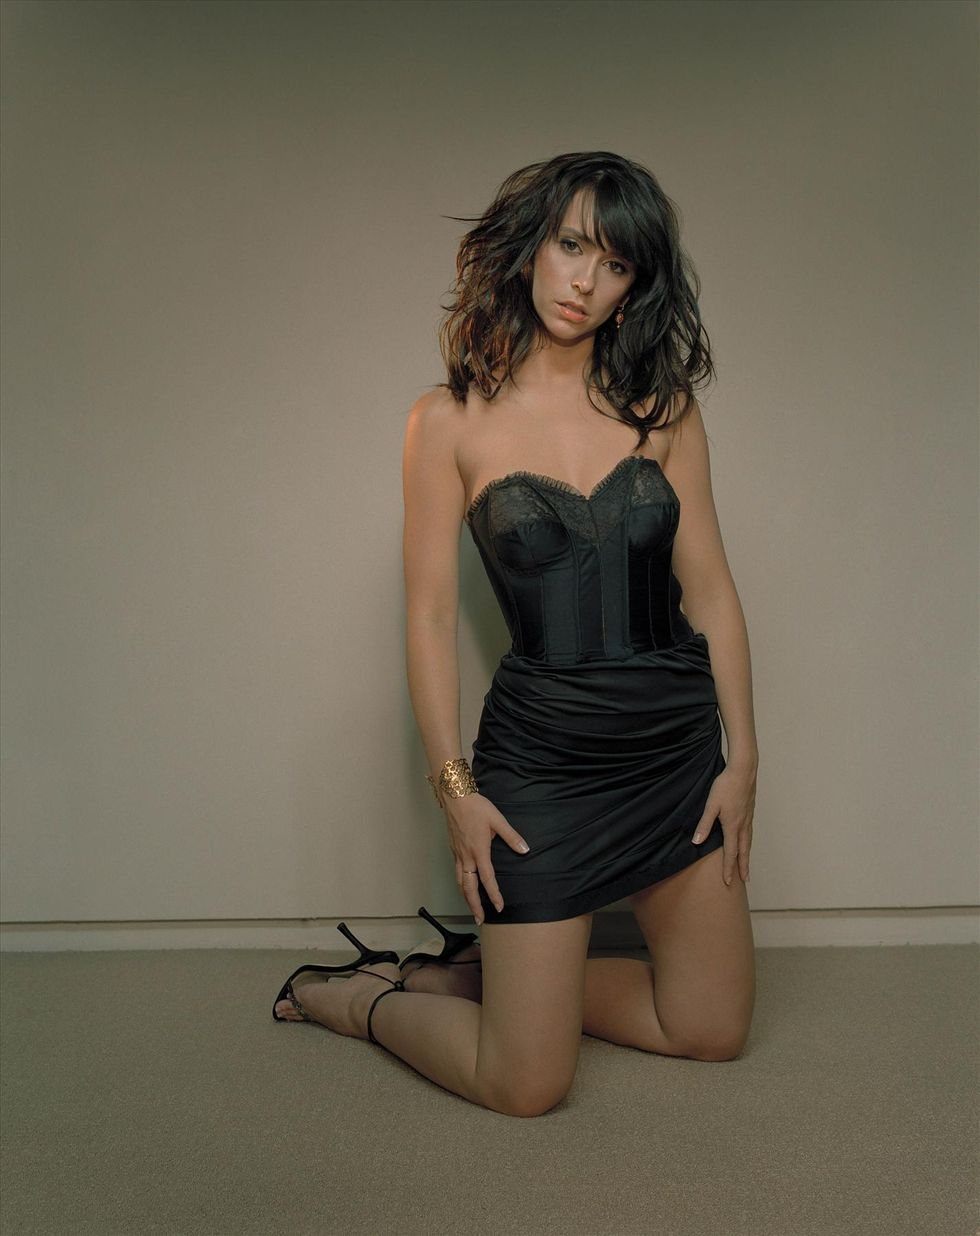 jennifer-love-hewitt-giant-magazine-photoshoot-01